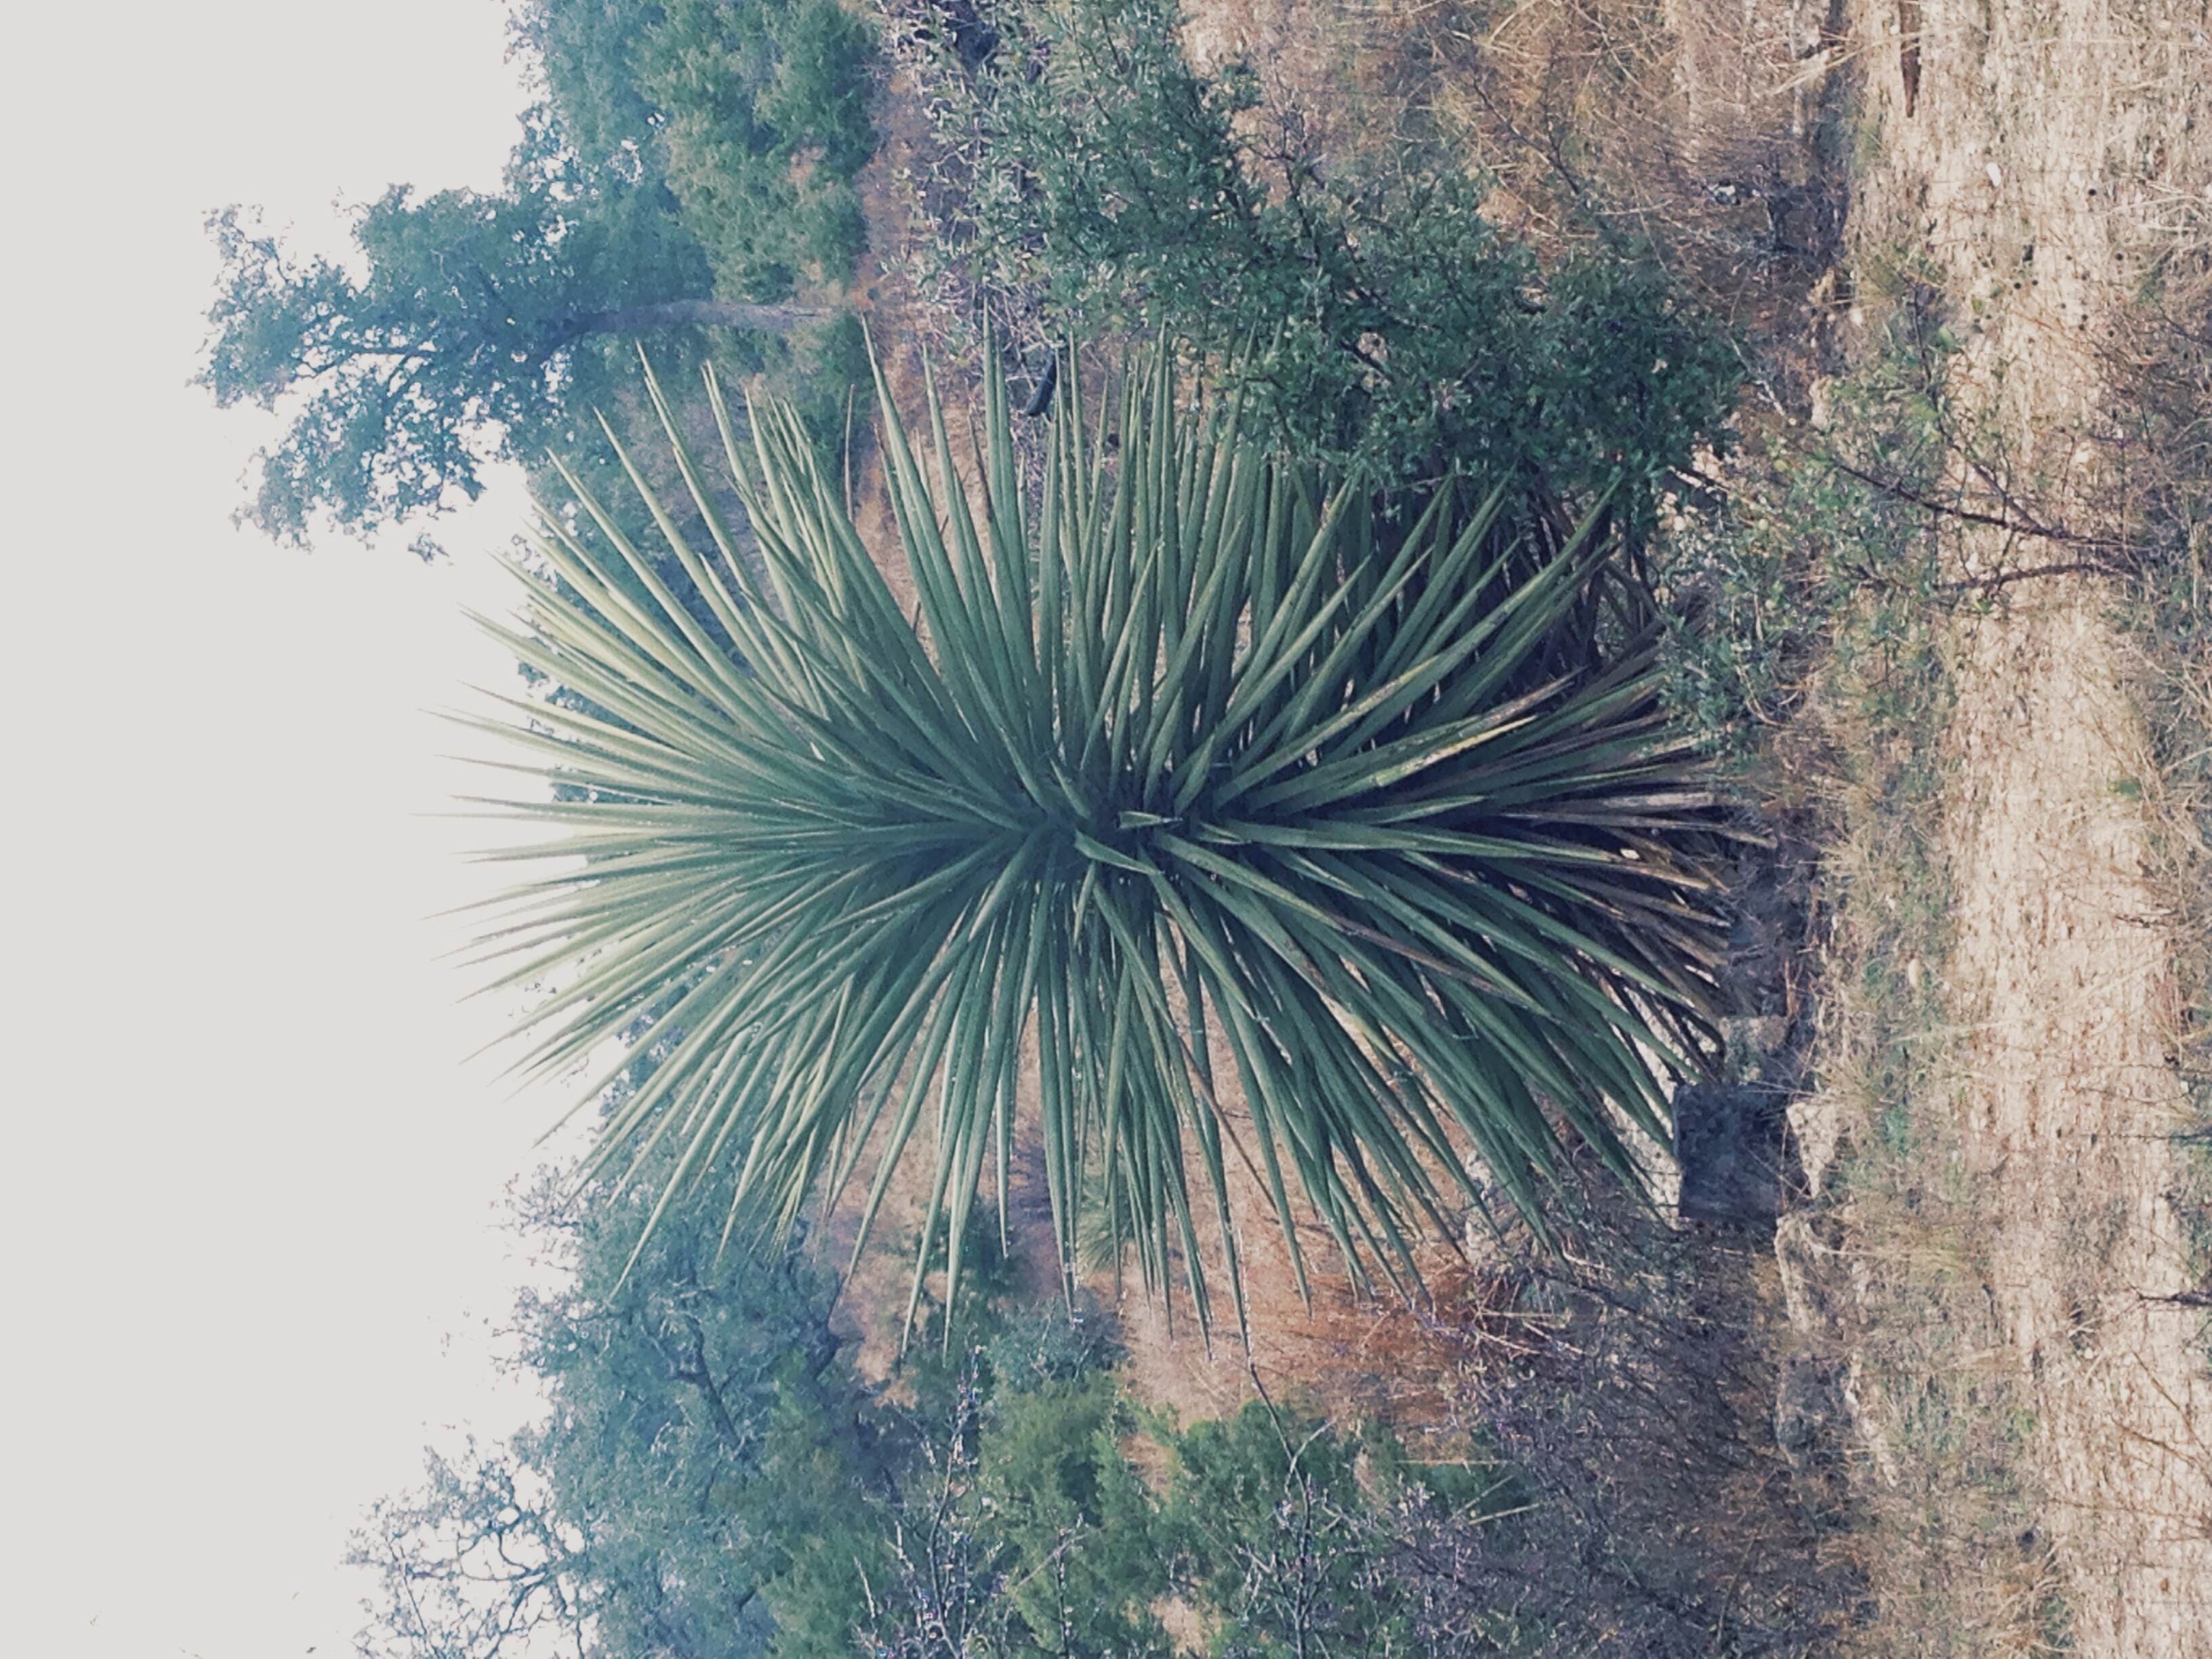 Plant: Yucca treculeana, Spanish Dagger | Location: Double Eagle Ranch, Burnet Co., Texas